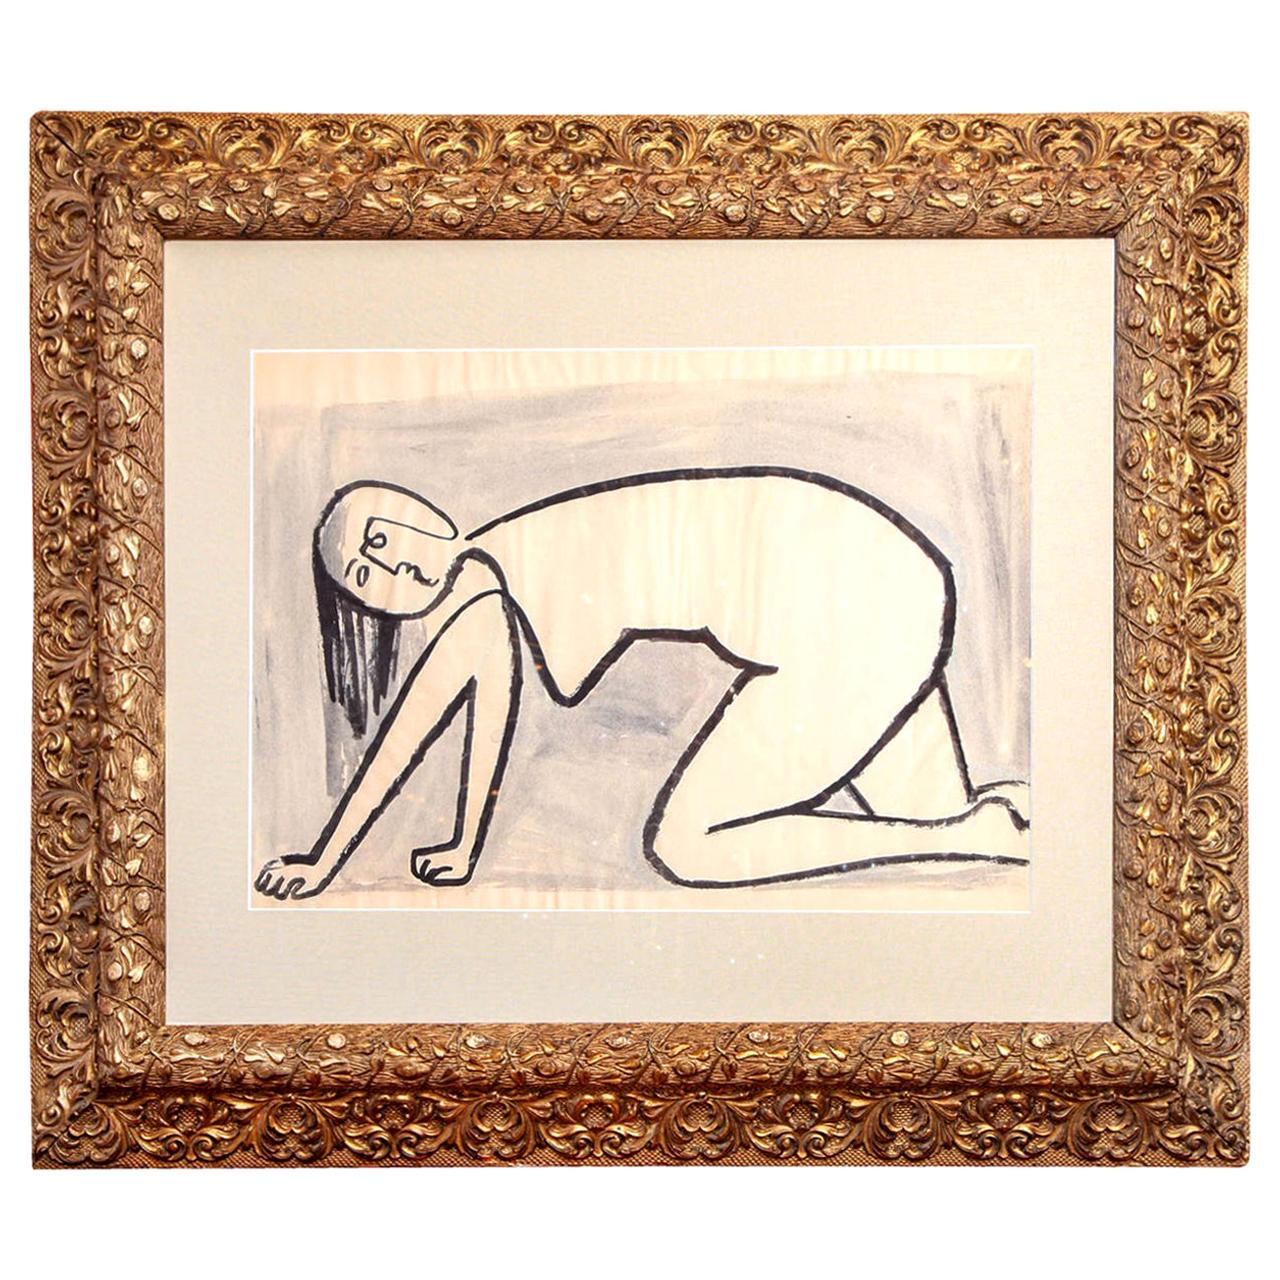 Painting of a Woman, Mid-Century, Black and White, Modern Art, circa 1950